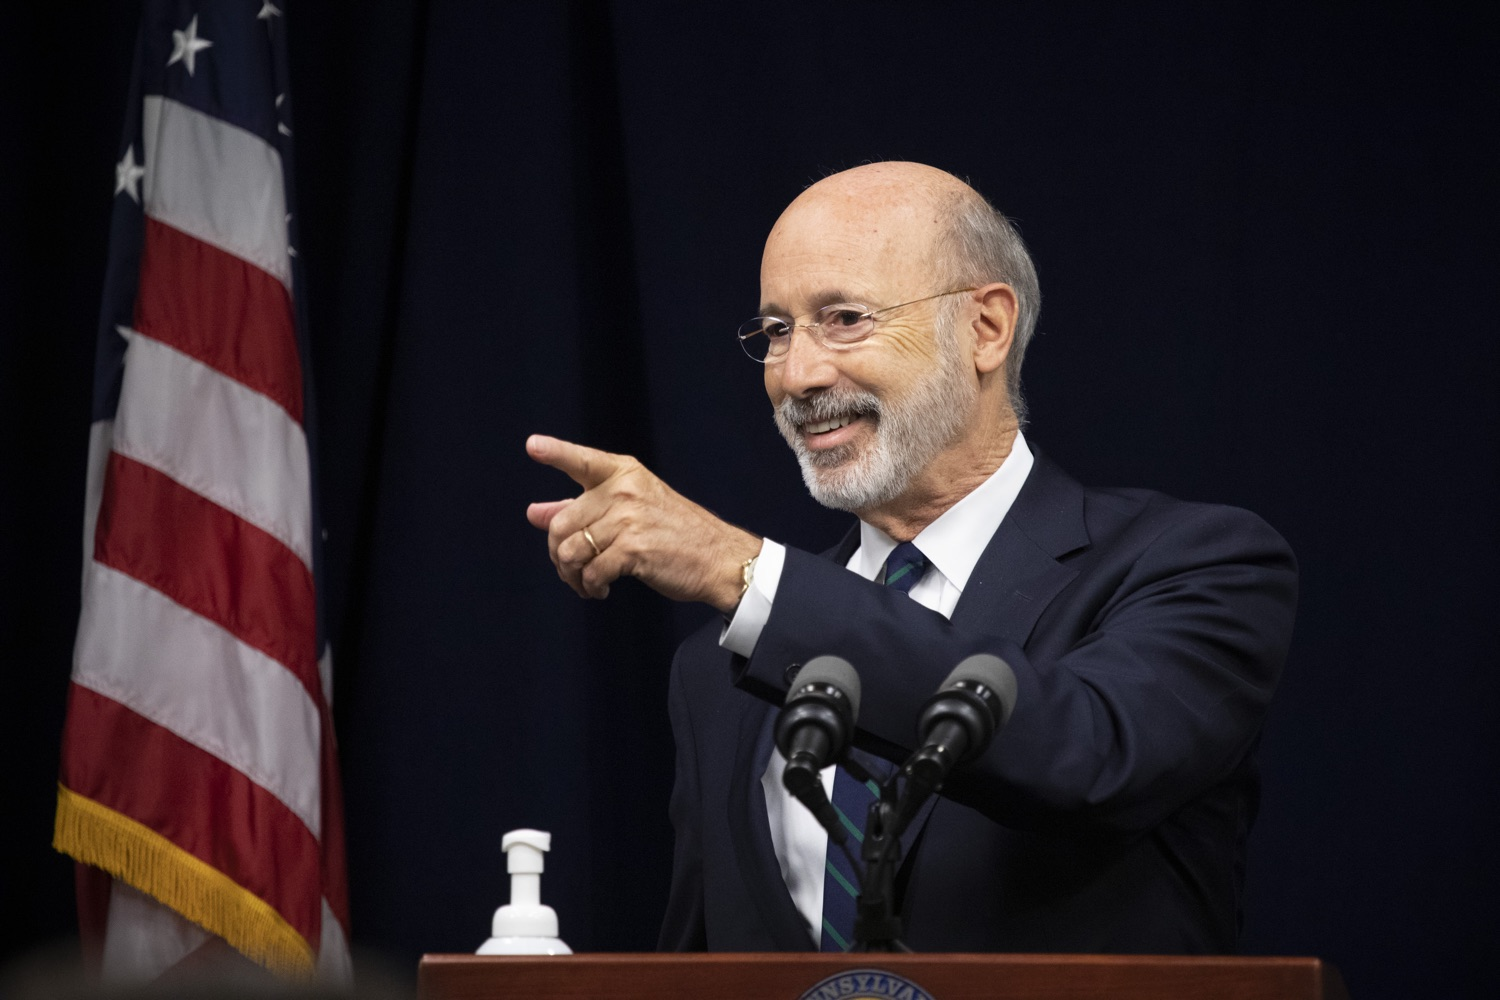 """<a href=""""https://filesource.wostreaming.net/commonwealthofpa/photo/18239_gov_recMarijuana_dz_003.jpg"""" target=""""_blank"""">⇣Download Photo<br></a>Pennsylvania Governor Tom Wolf speaking with the press. Governor Tom Wolf and Lt. Governor John Fetterman today called on the legislature to take up the legalization of adult-use cannabis to help with the states economic recovery amid COVID-19. Legalization will also create more outlets for important restorative justice programs in the commonwealth.  Harrisburg, PA  Sept. 3, 2020"""